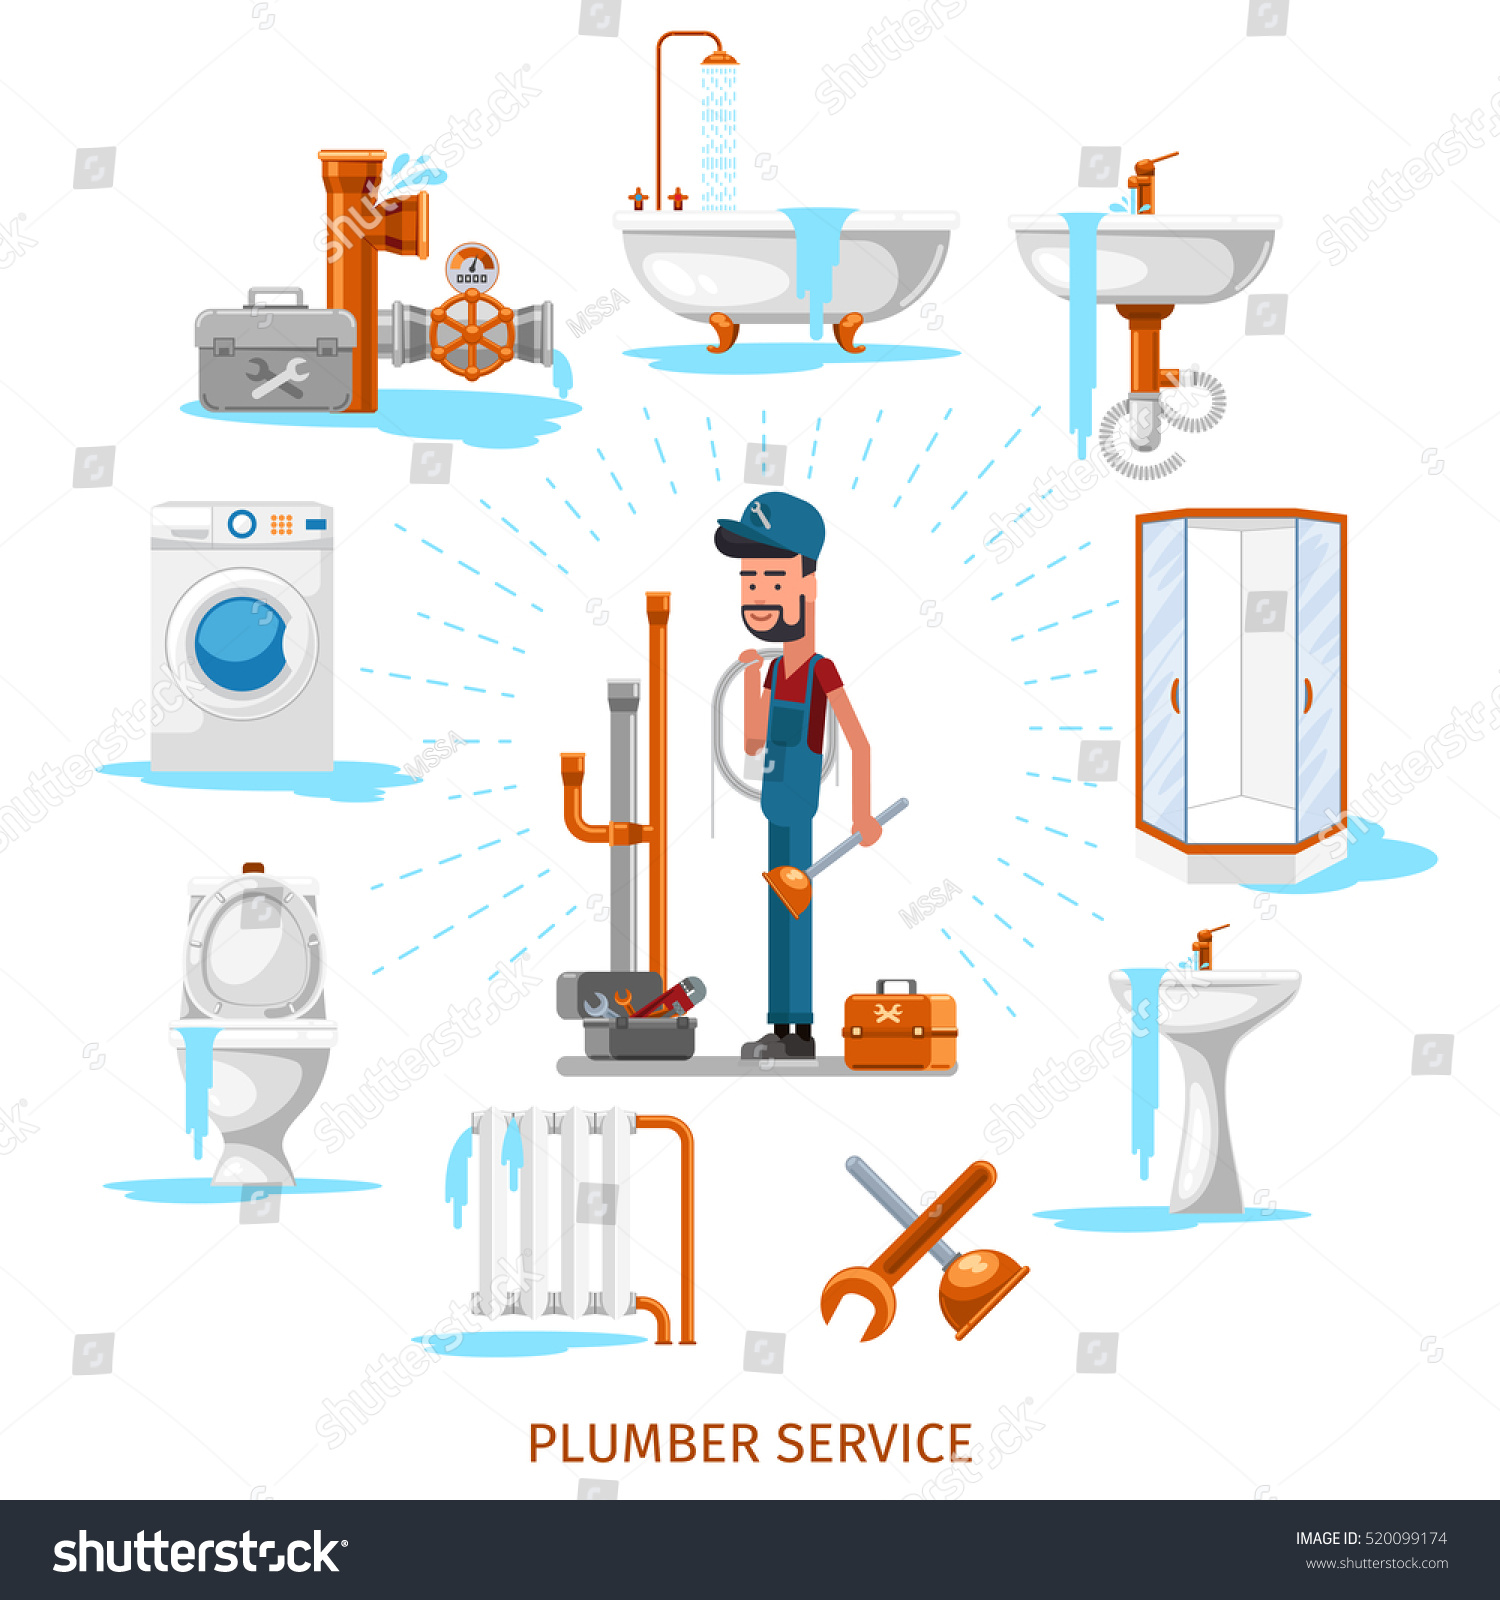 stock-vector-plumber-or-maintenance-engineer-at-plumbing-work-service-repair-vector-illustration-520099174.jpg